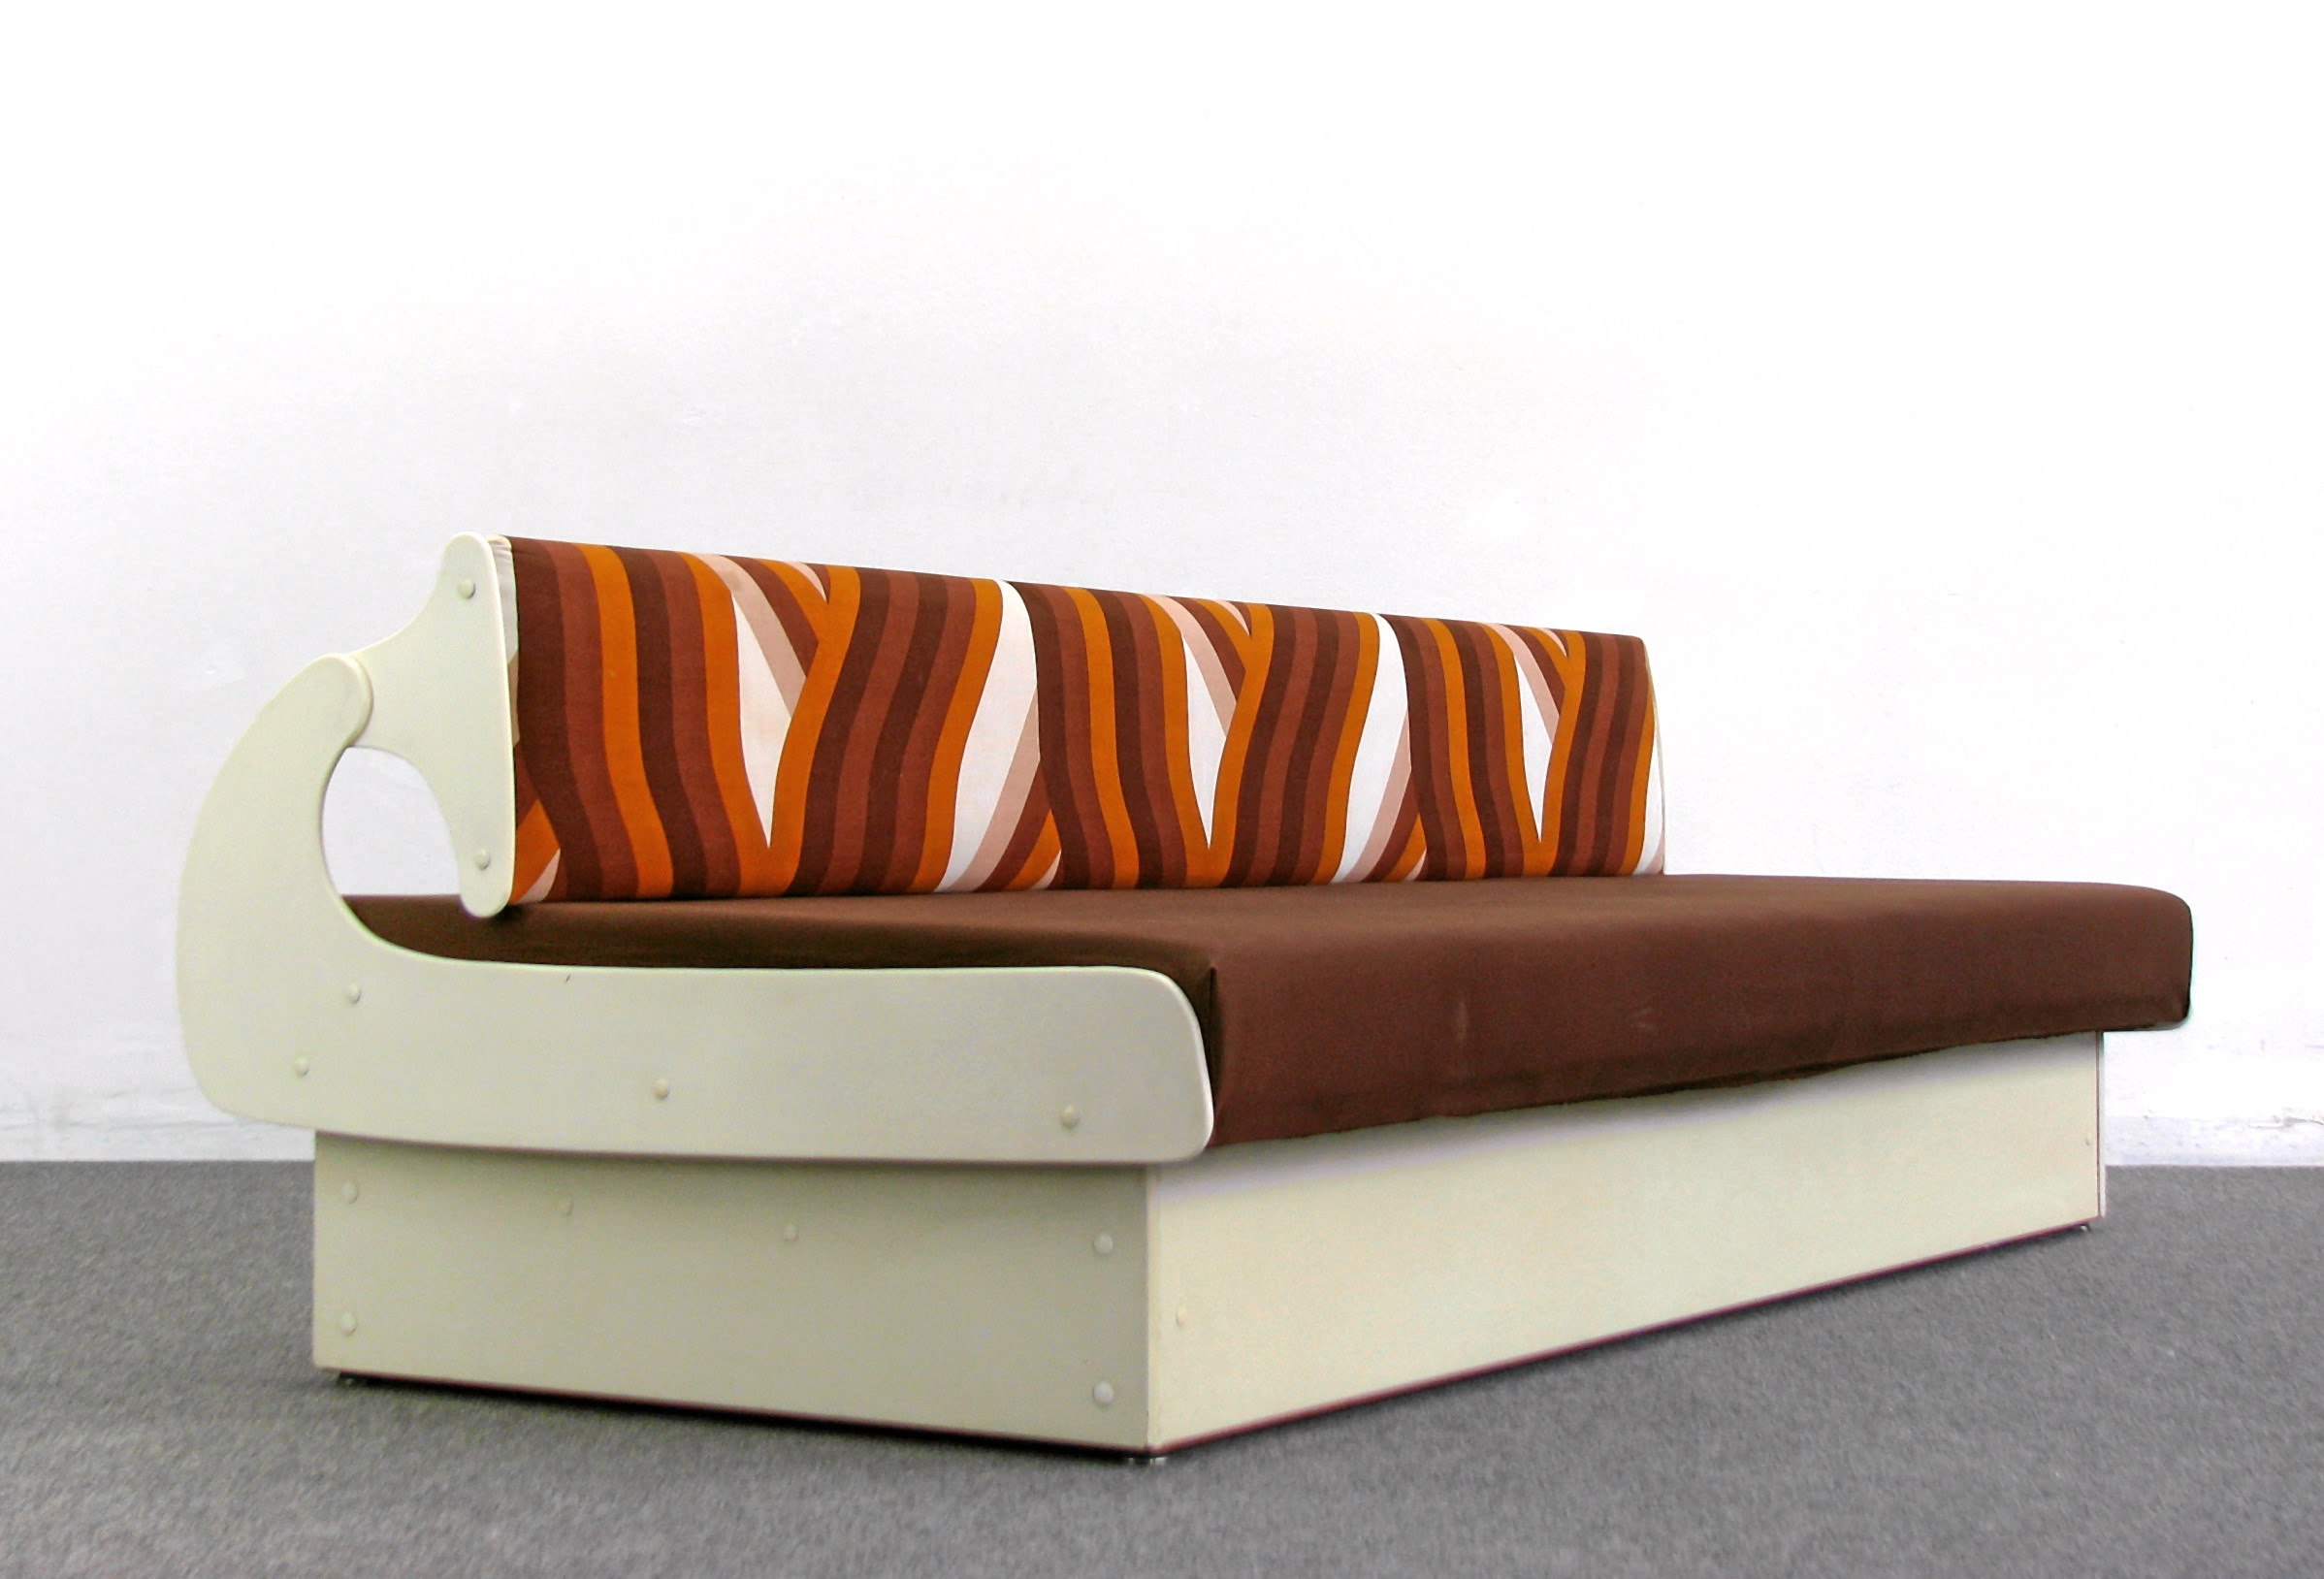 70s daybed colani style couch sofa liege orbit design space age 70er ebay. Black Bedroom Furniture Sets. Home Design Ideas